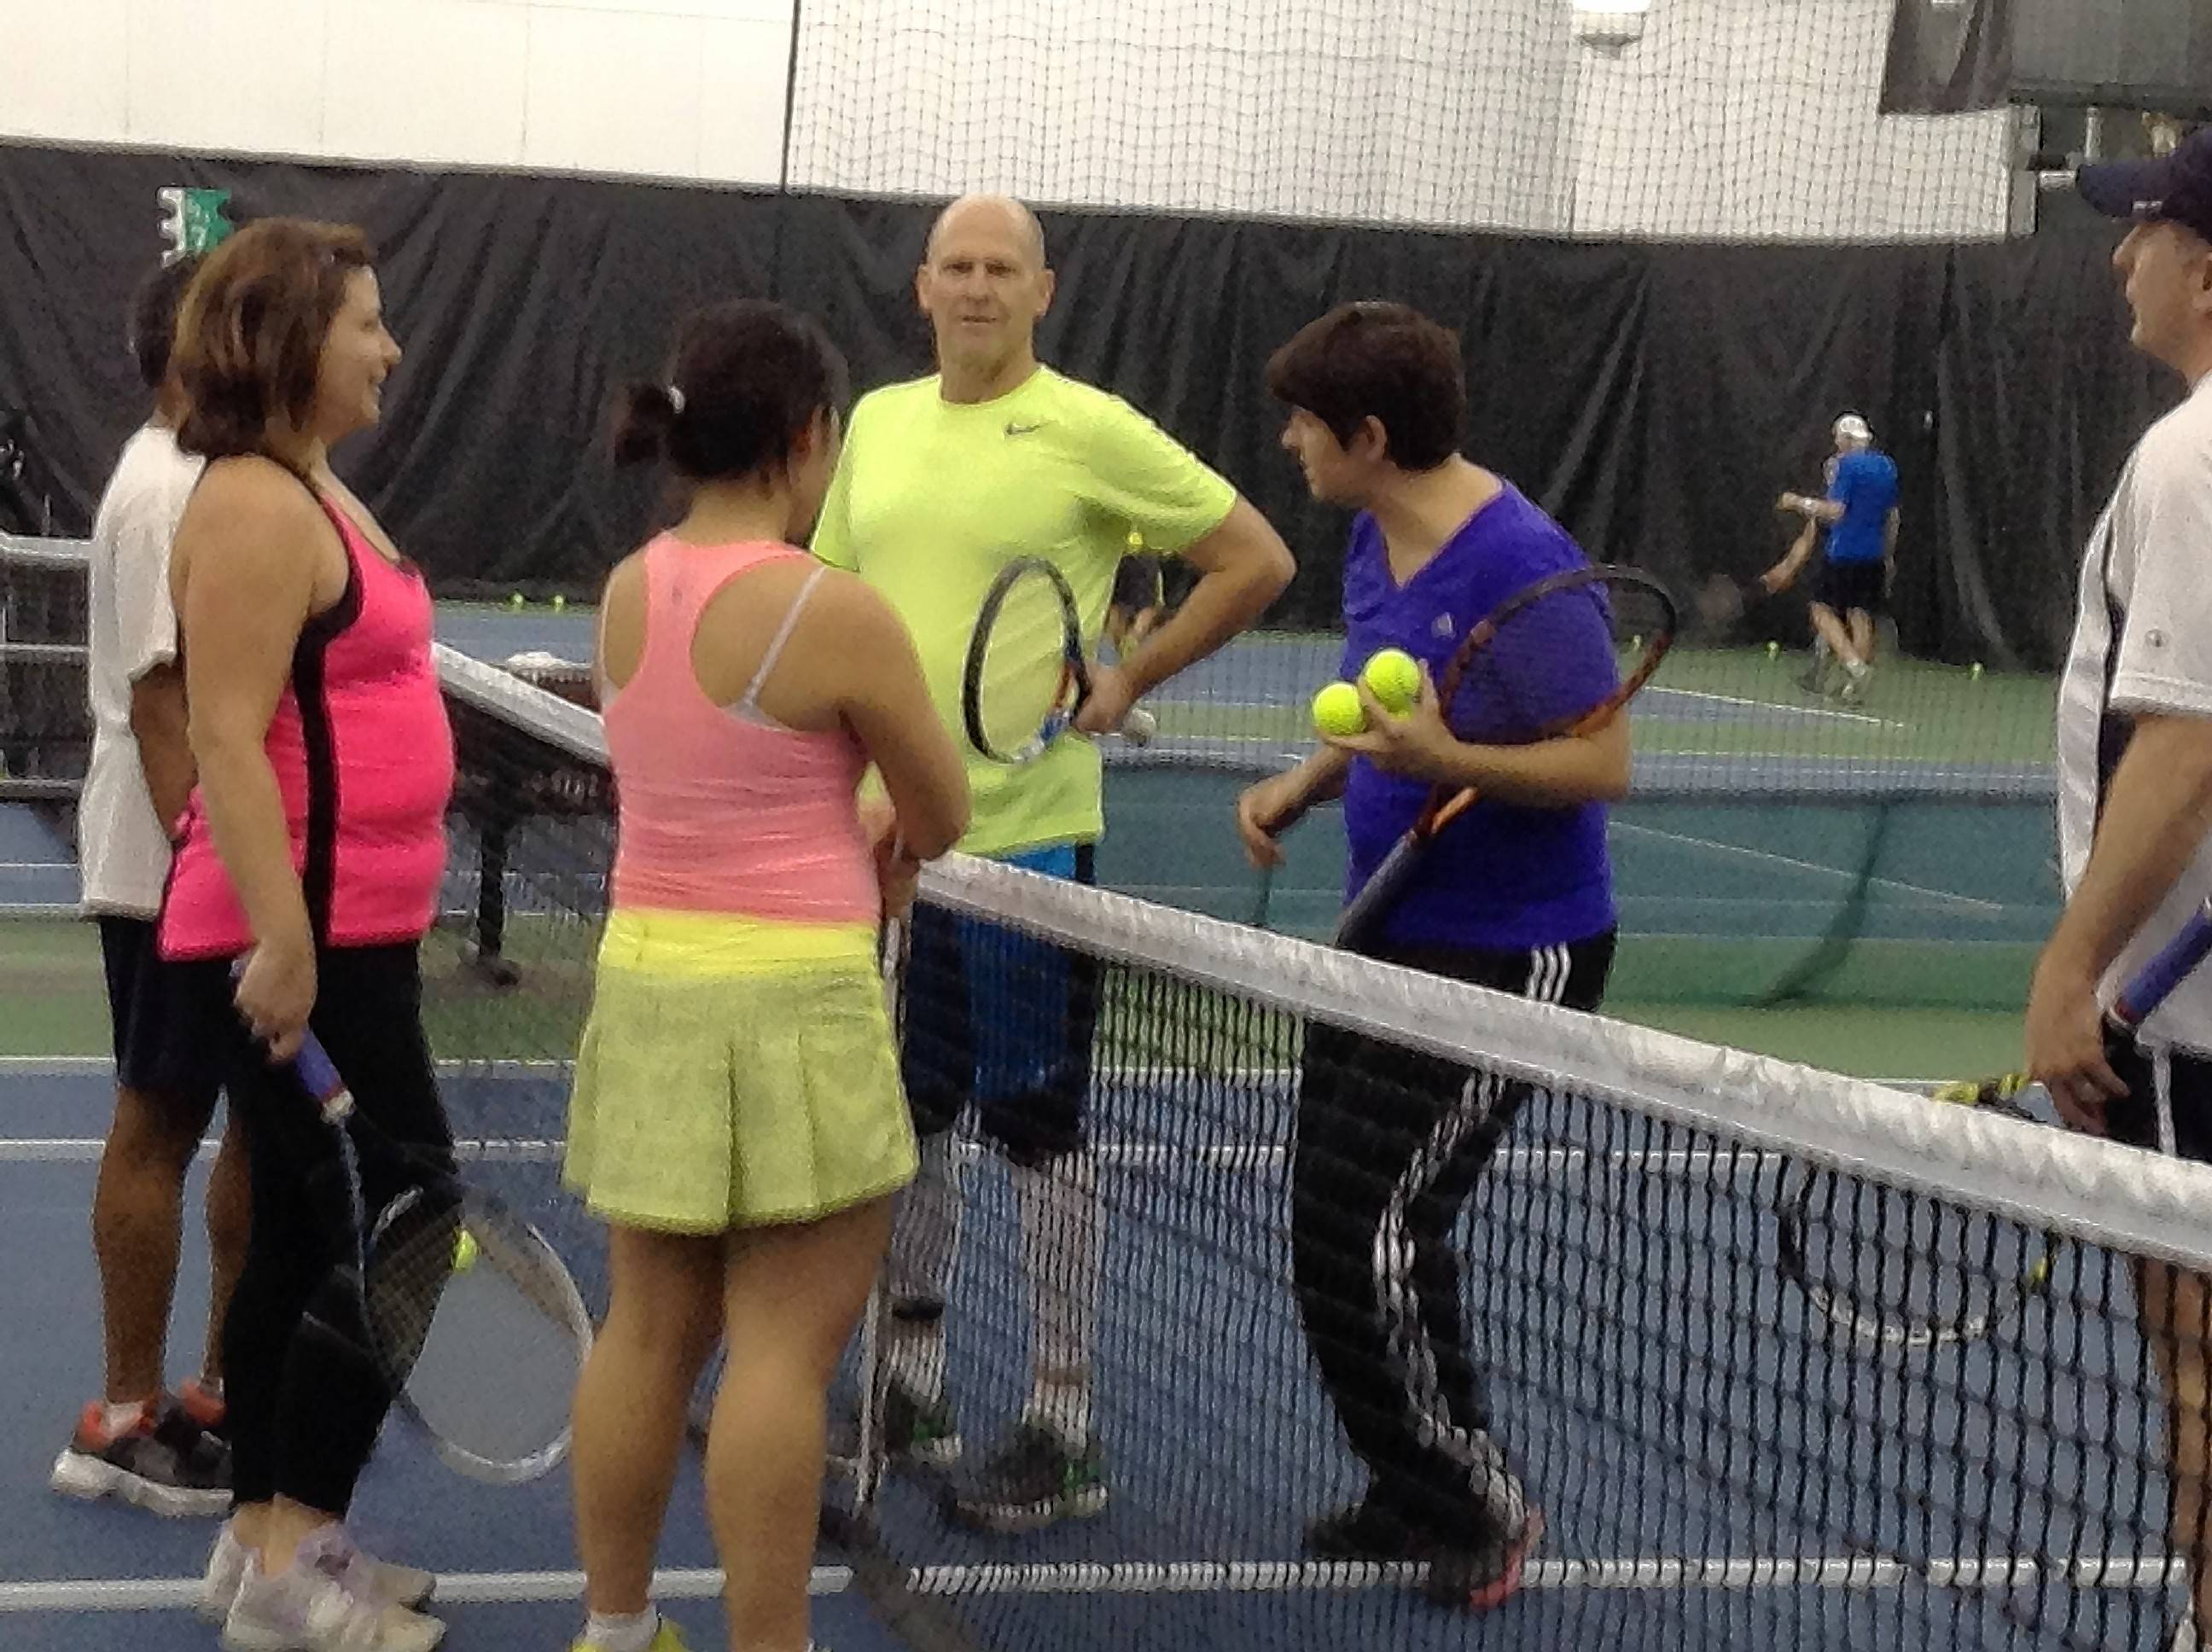 Cardio Tennis: More focus on the sweat, not the net